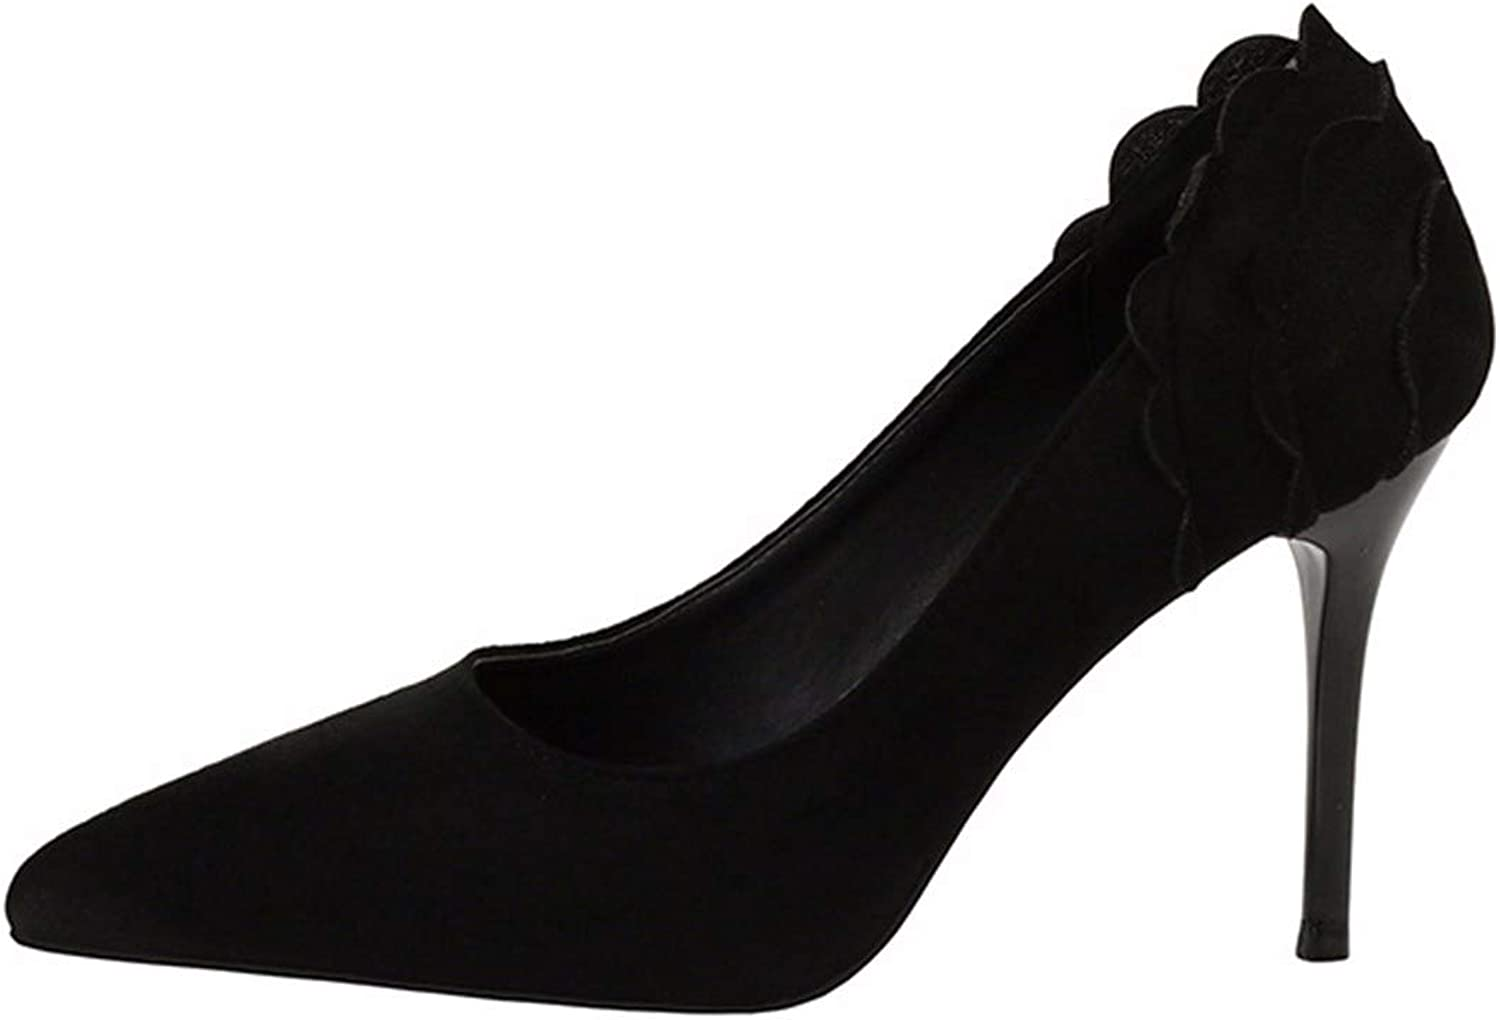 QPGGP-Women's shoes Top European and American Sexy Night Club Wind Lady's Super High-Heeled Single shoes Women's shoes